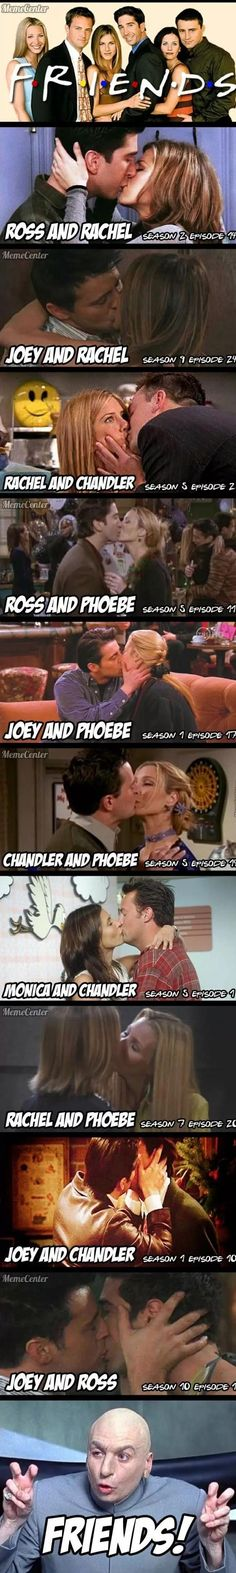 Only Monica & Rachel and Chandler and Ross (and no, Monica and Ross is not an alternative) is missing